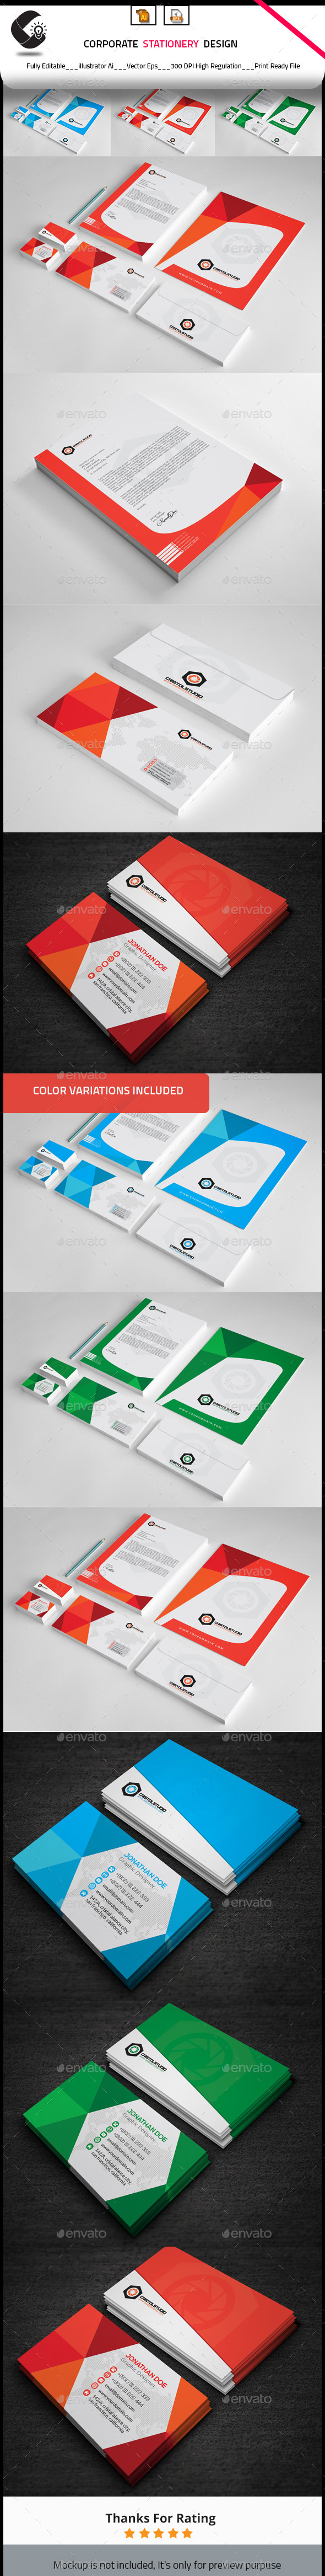 GraphicRiver Corporate Stationery Design 10270119